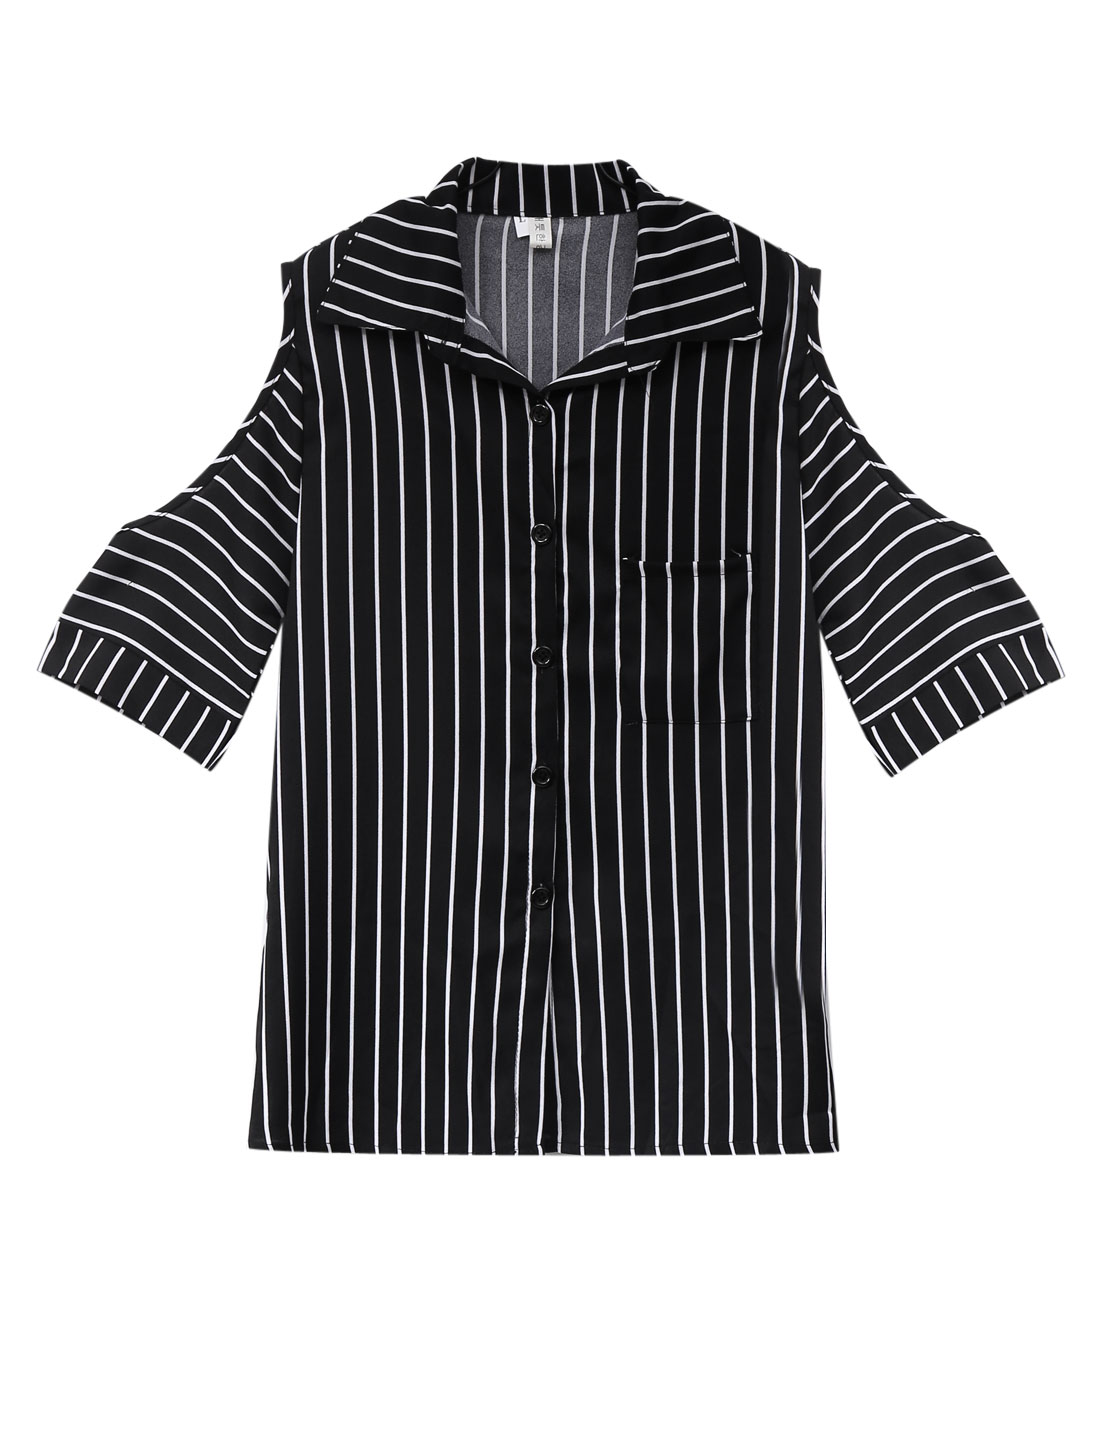 Lady Button Front 1/2 Sleeve Stripes Cut Out Shoulder Shirt Black XS